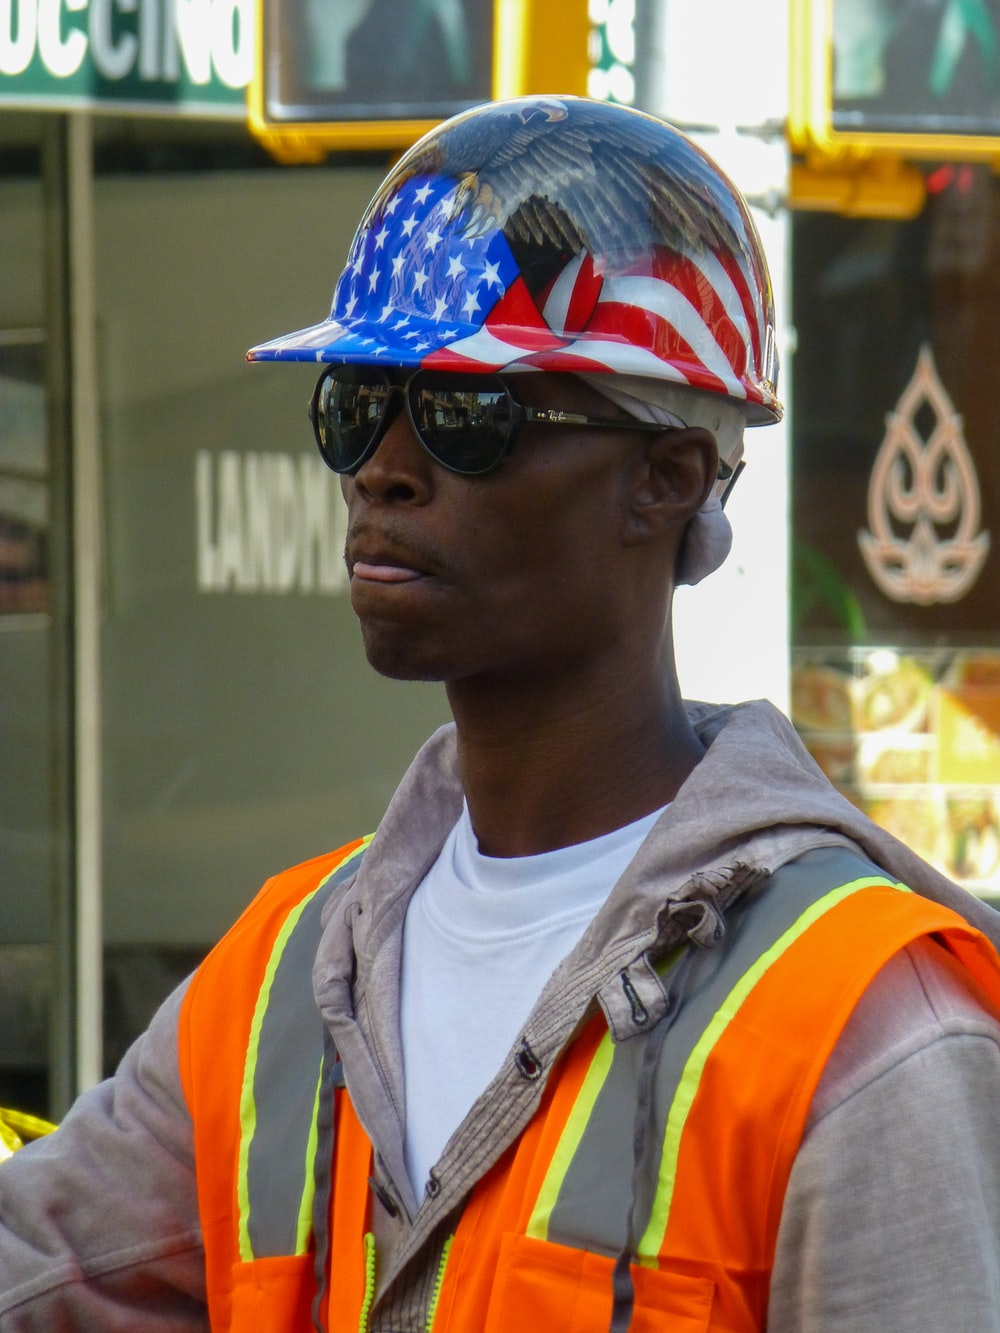 man in white and orange shirt wearing blue and white cap and black sunglasses